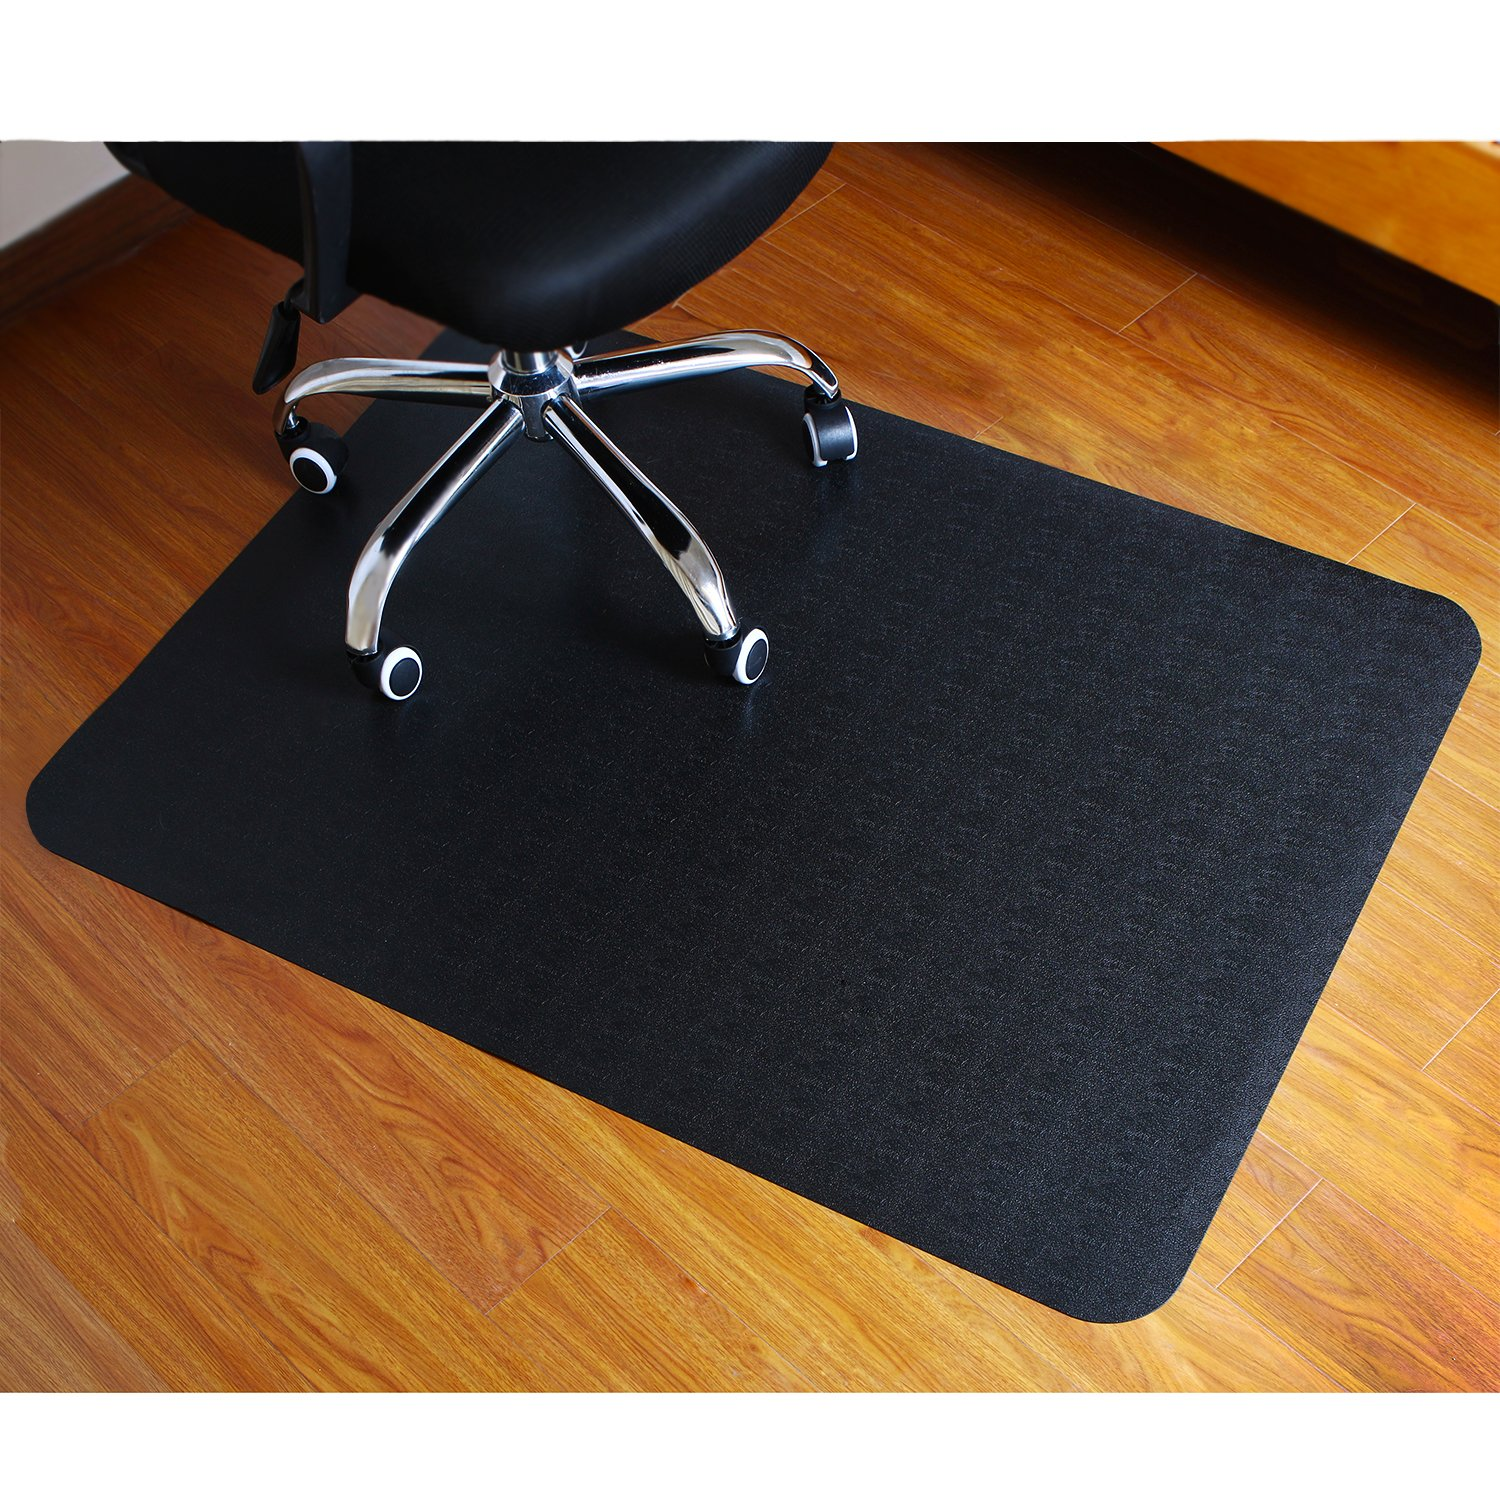 Polytene Office Chair Mat, 47''x35'',Hard Floor Protection Only with Rectangular Shaped Anti Slide Coating on the Underside, 1.3mm Black